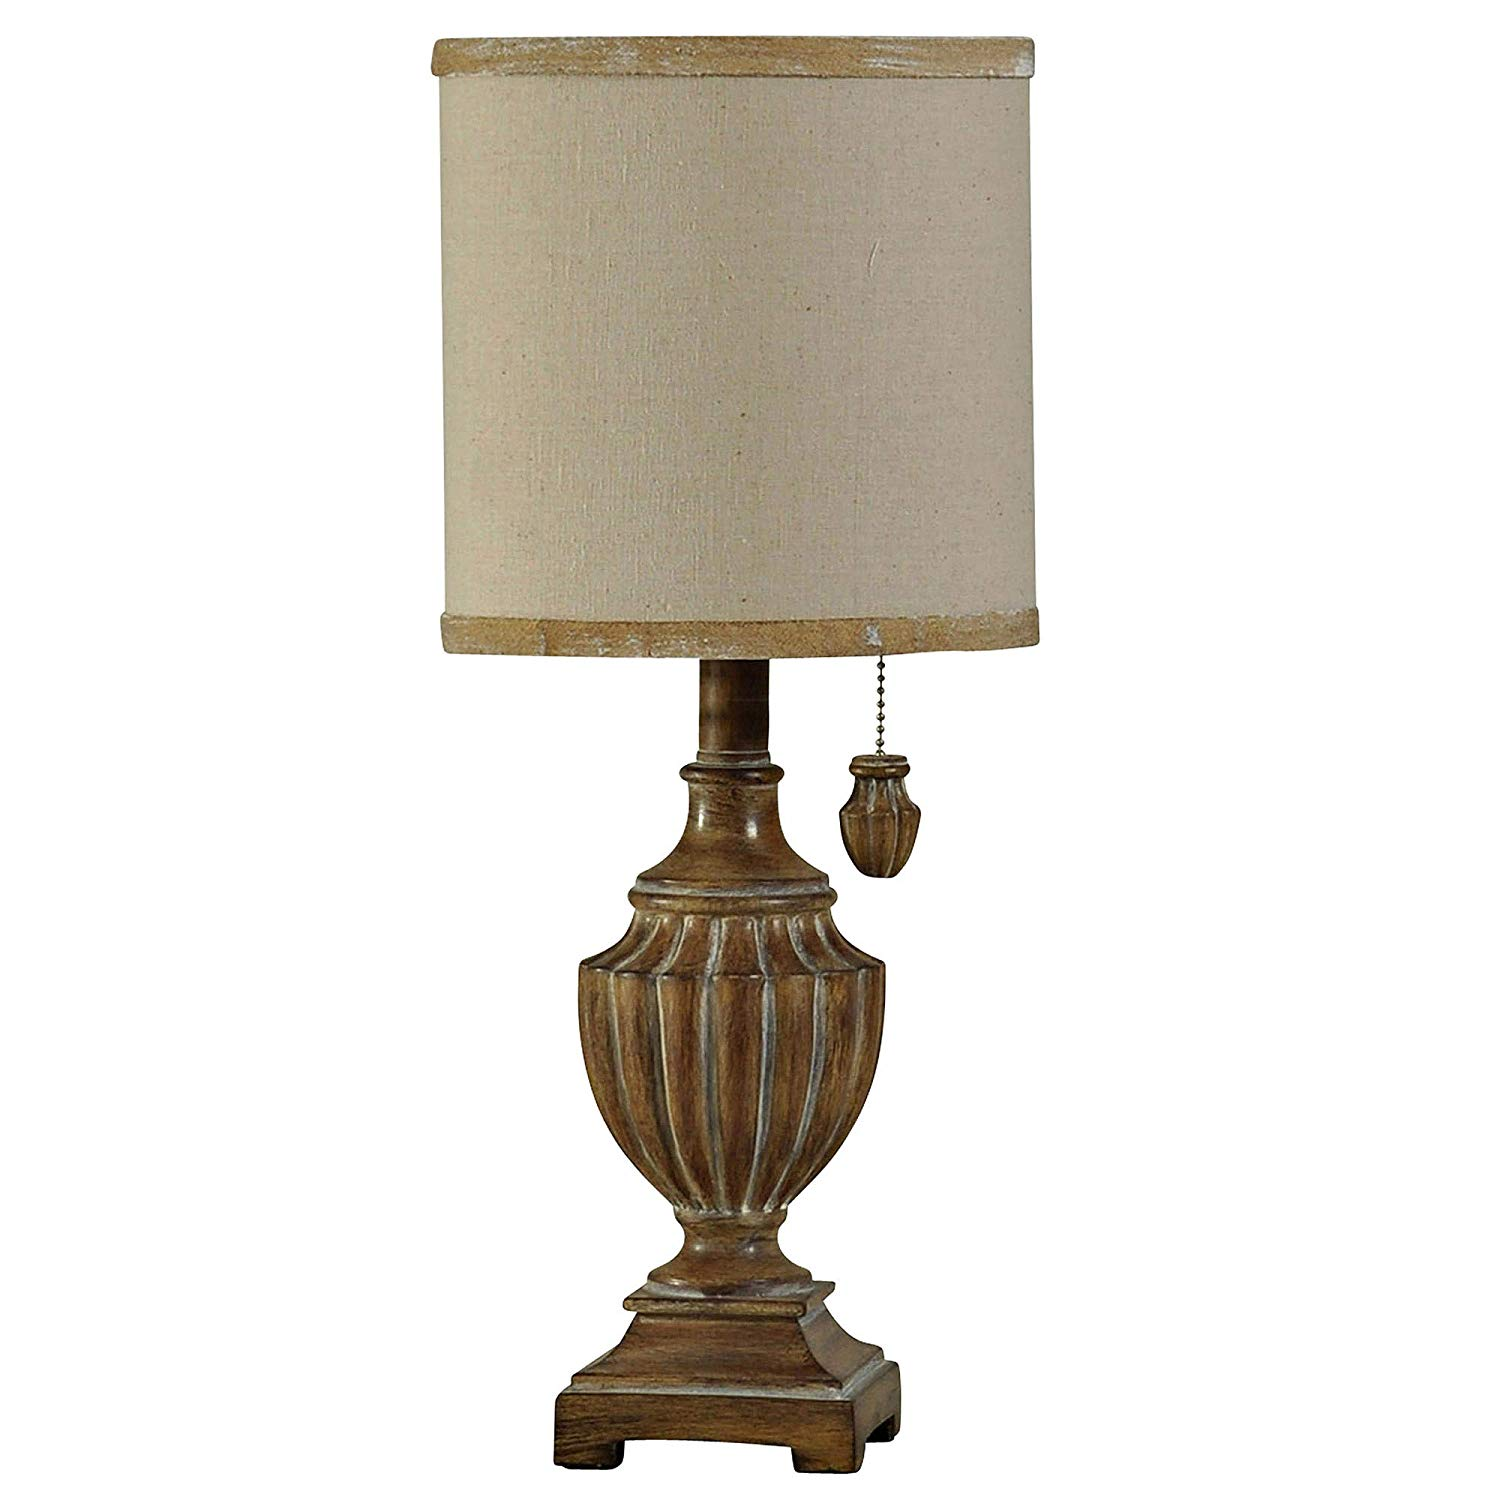 delacora kerala tall accent table lamp with hardback lamps fabric shade dining decoration accessories battery operated lighting yellow home decor accents wood pedestal stand pork